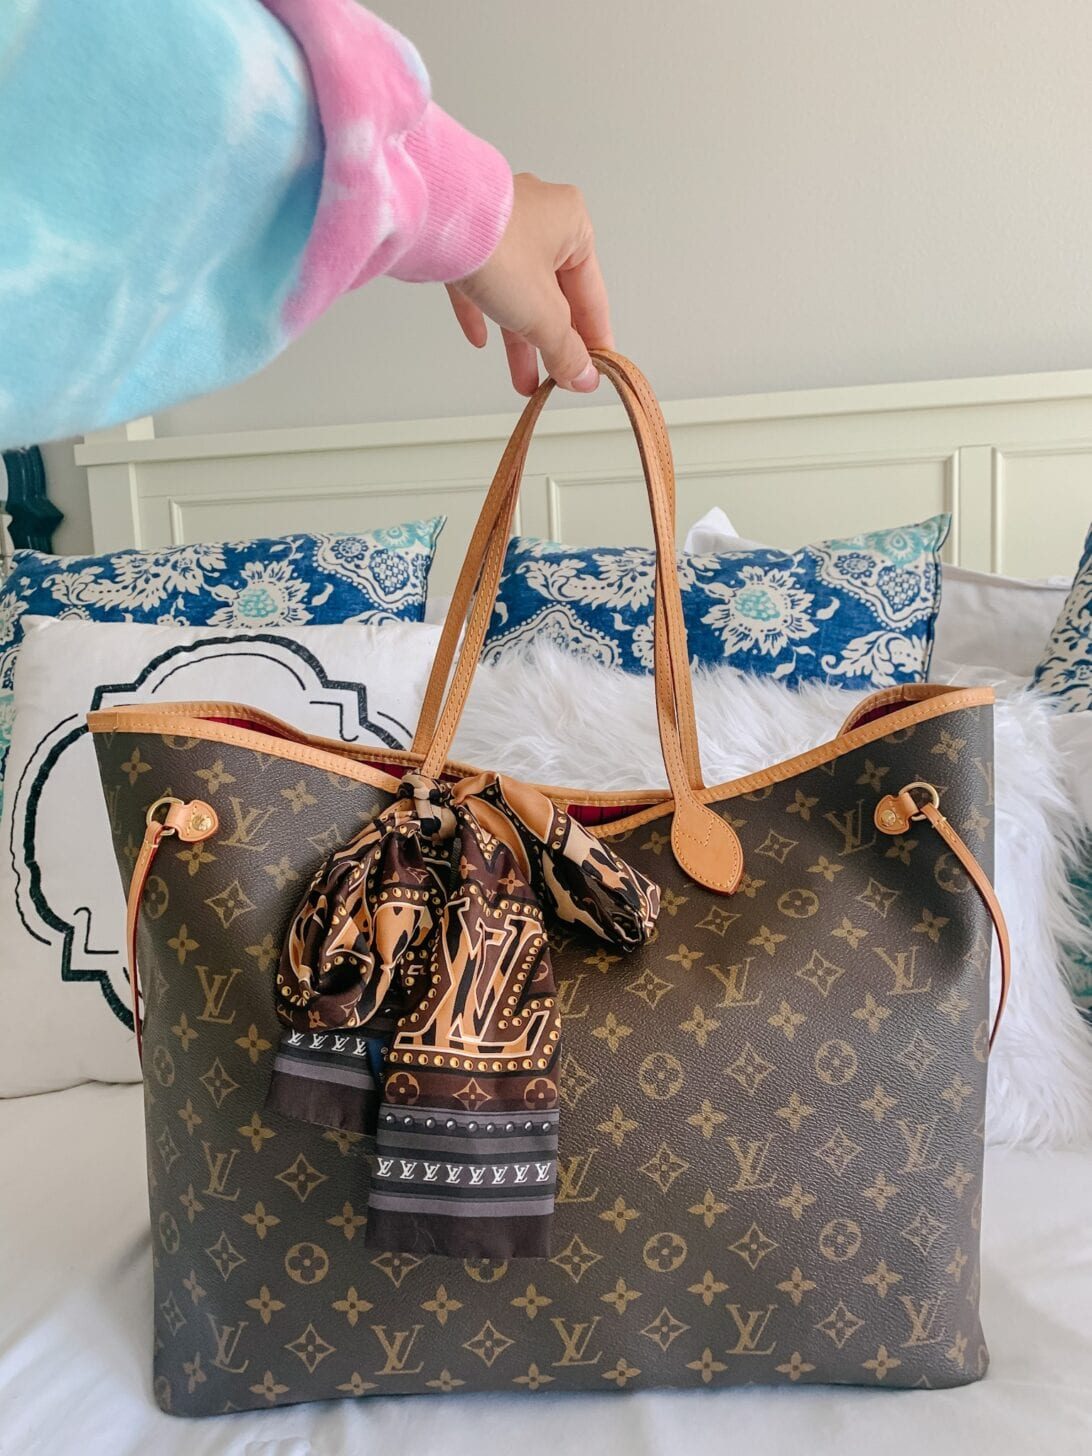 Louis Vuitton neverfull, Louis Vuitton bag review, Louis Vuitton bandeau